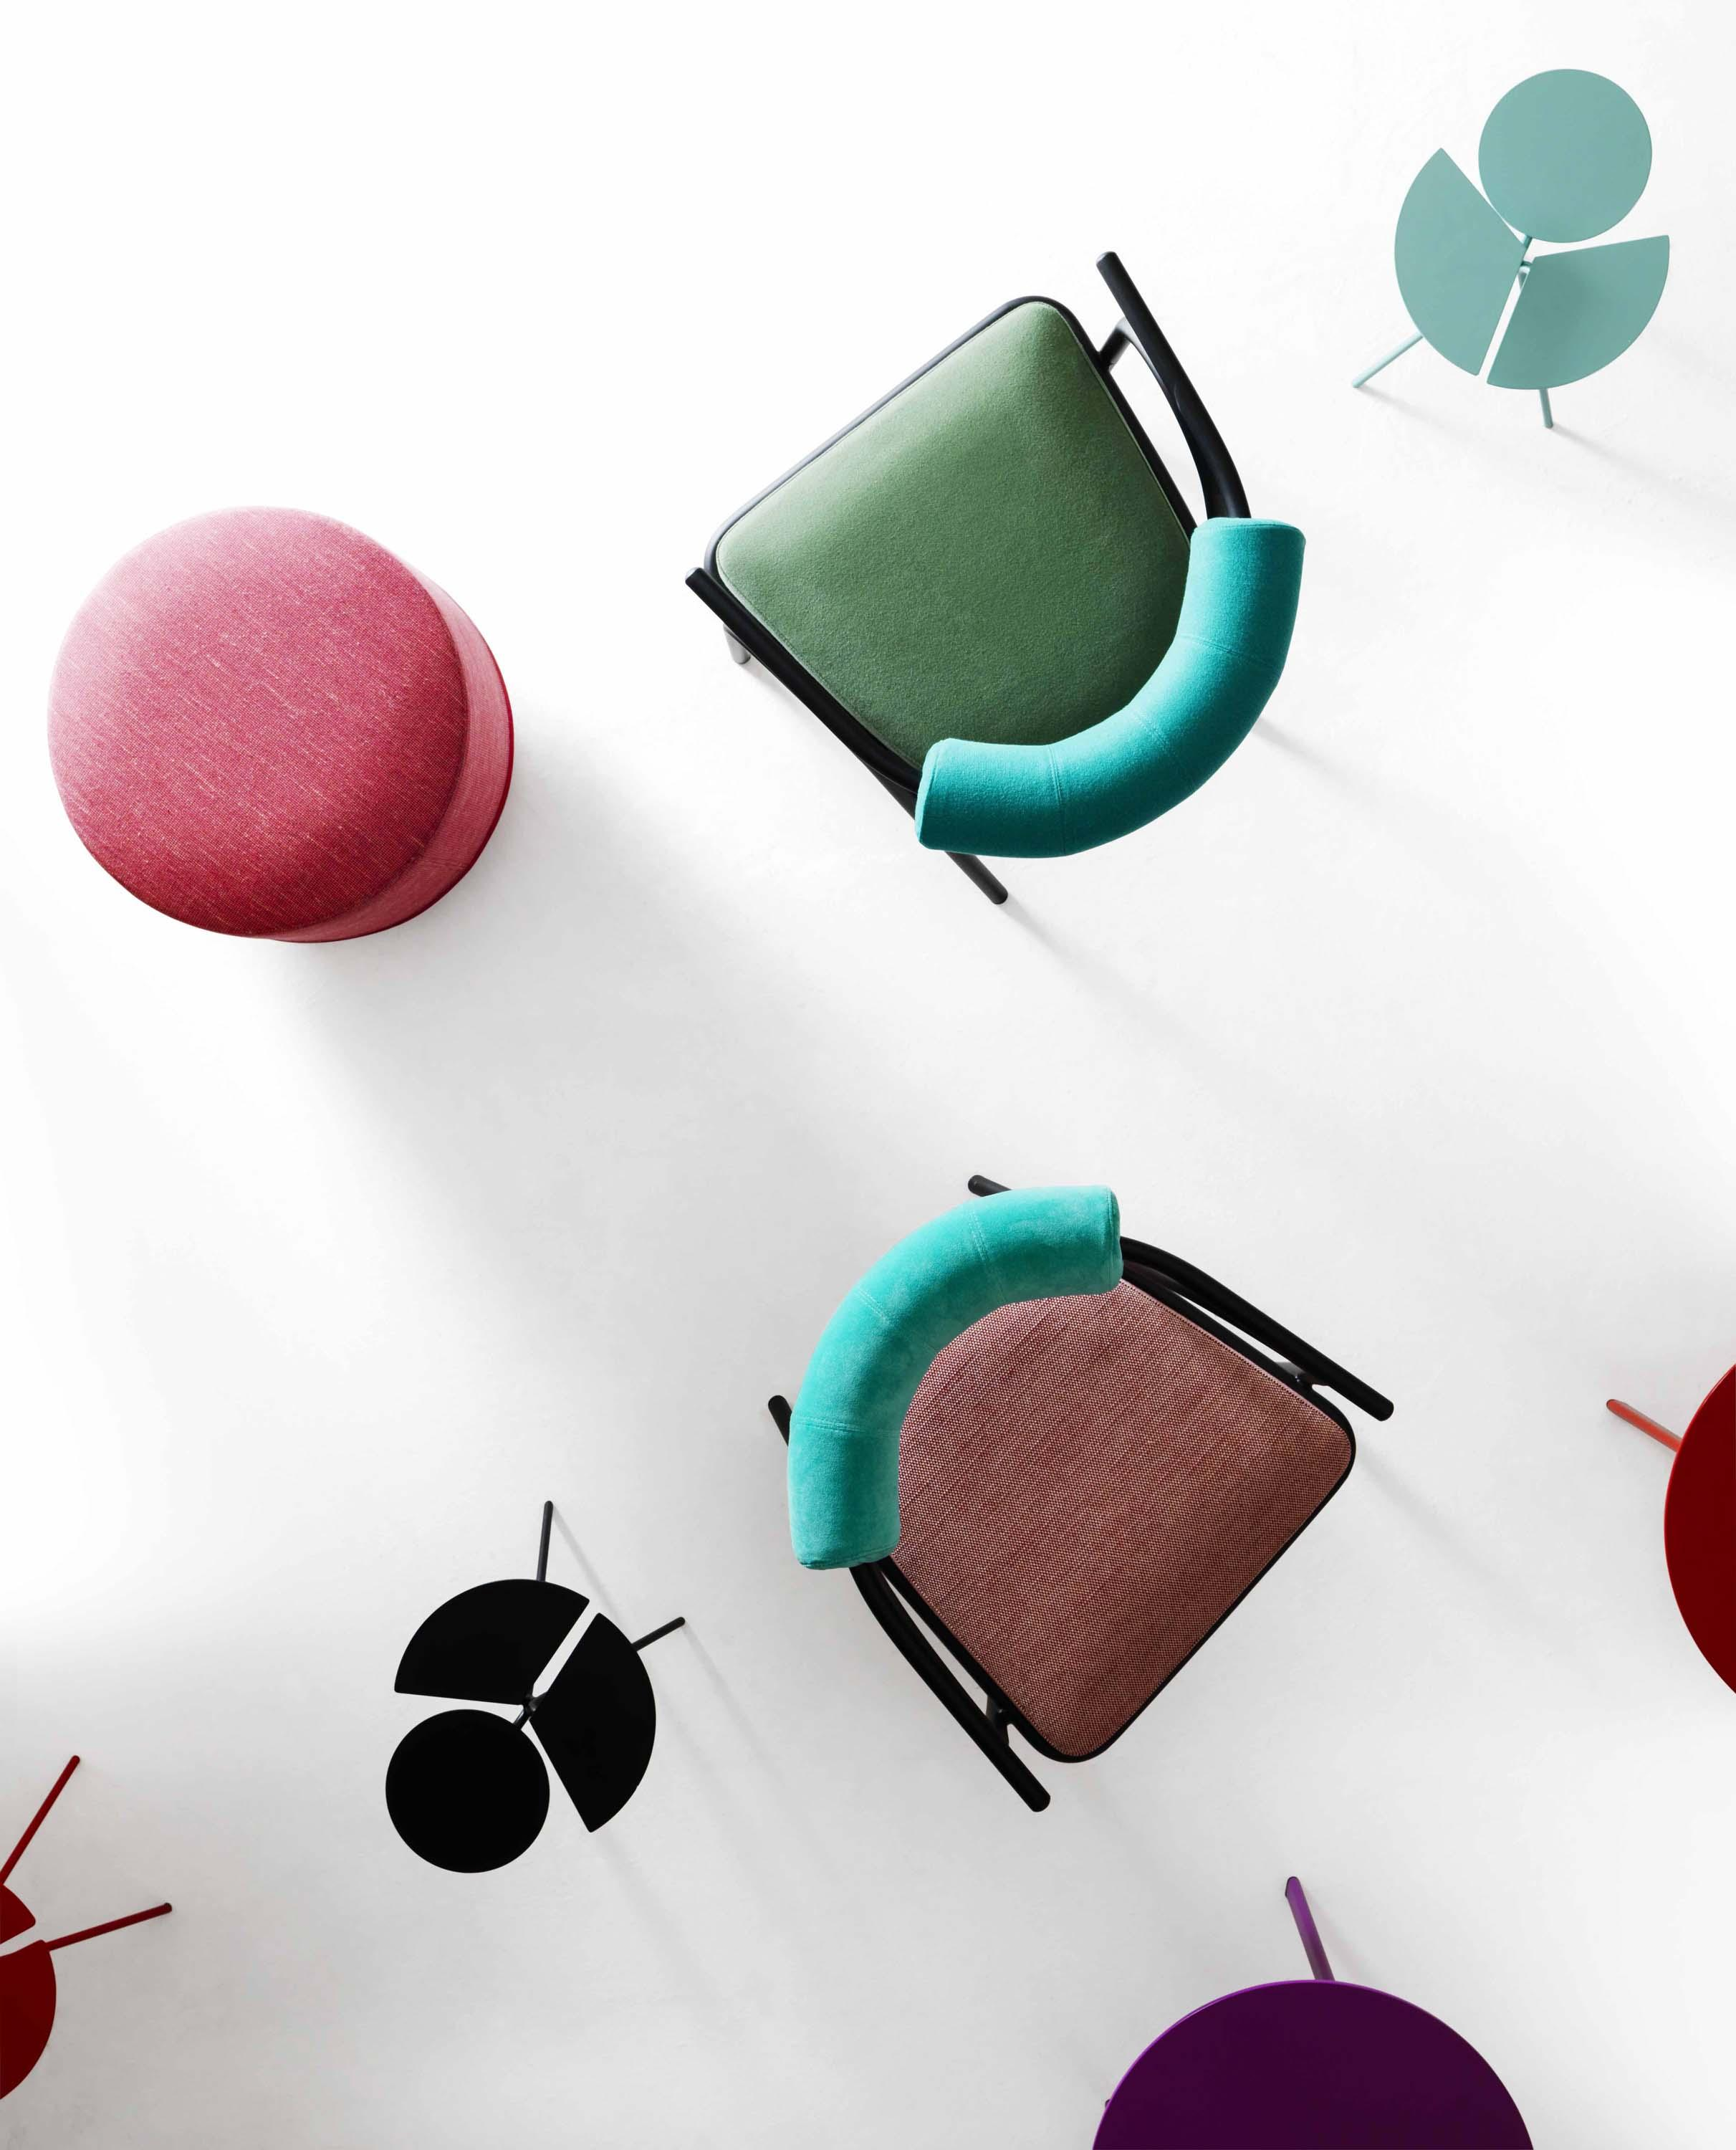 Baba Armchair - <p>Baba armchair plays the starring role in a fun game of colours and contrasts that draw their inspiration from traditional clothing and accessories used by African tribes, with the bright hues of tropical flora and the warm hues of the soil. The contrast is further emphasised in the pursuit of volumes between the backrest and seat, and the slimline monochromatic body that moves sinuously across the soft shapes of the padding.</p> <p>The armchair is made of lacquered steel frame with seat cushion and roll in polyurethane foam and polyester fiber lining. Fabric cover in mono or two-coloured.</p> <p>A range of materials, colours and sizes are available in a number of combinations. Prices may vary.<br /> Please enquire for full details.</p>  | Matter of Stuff